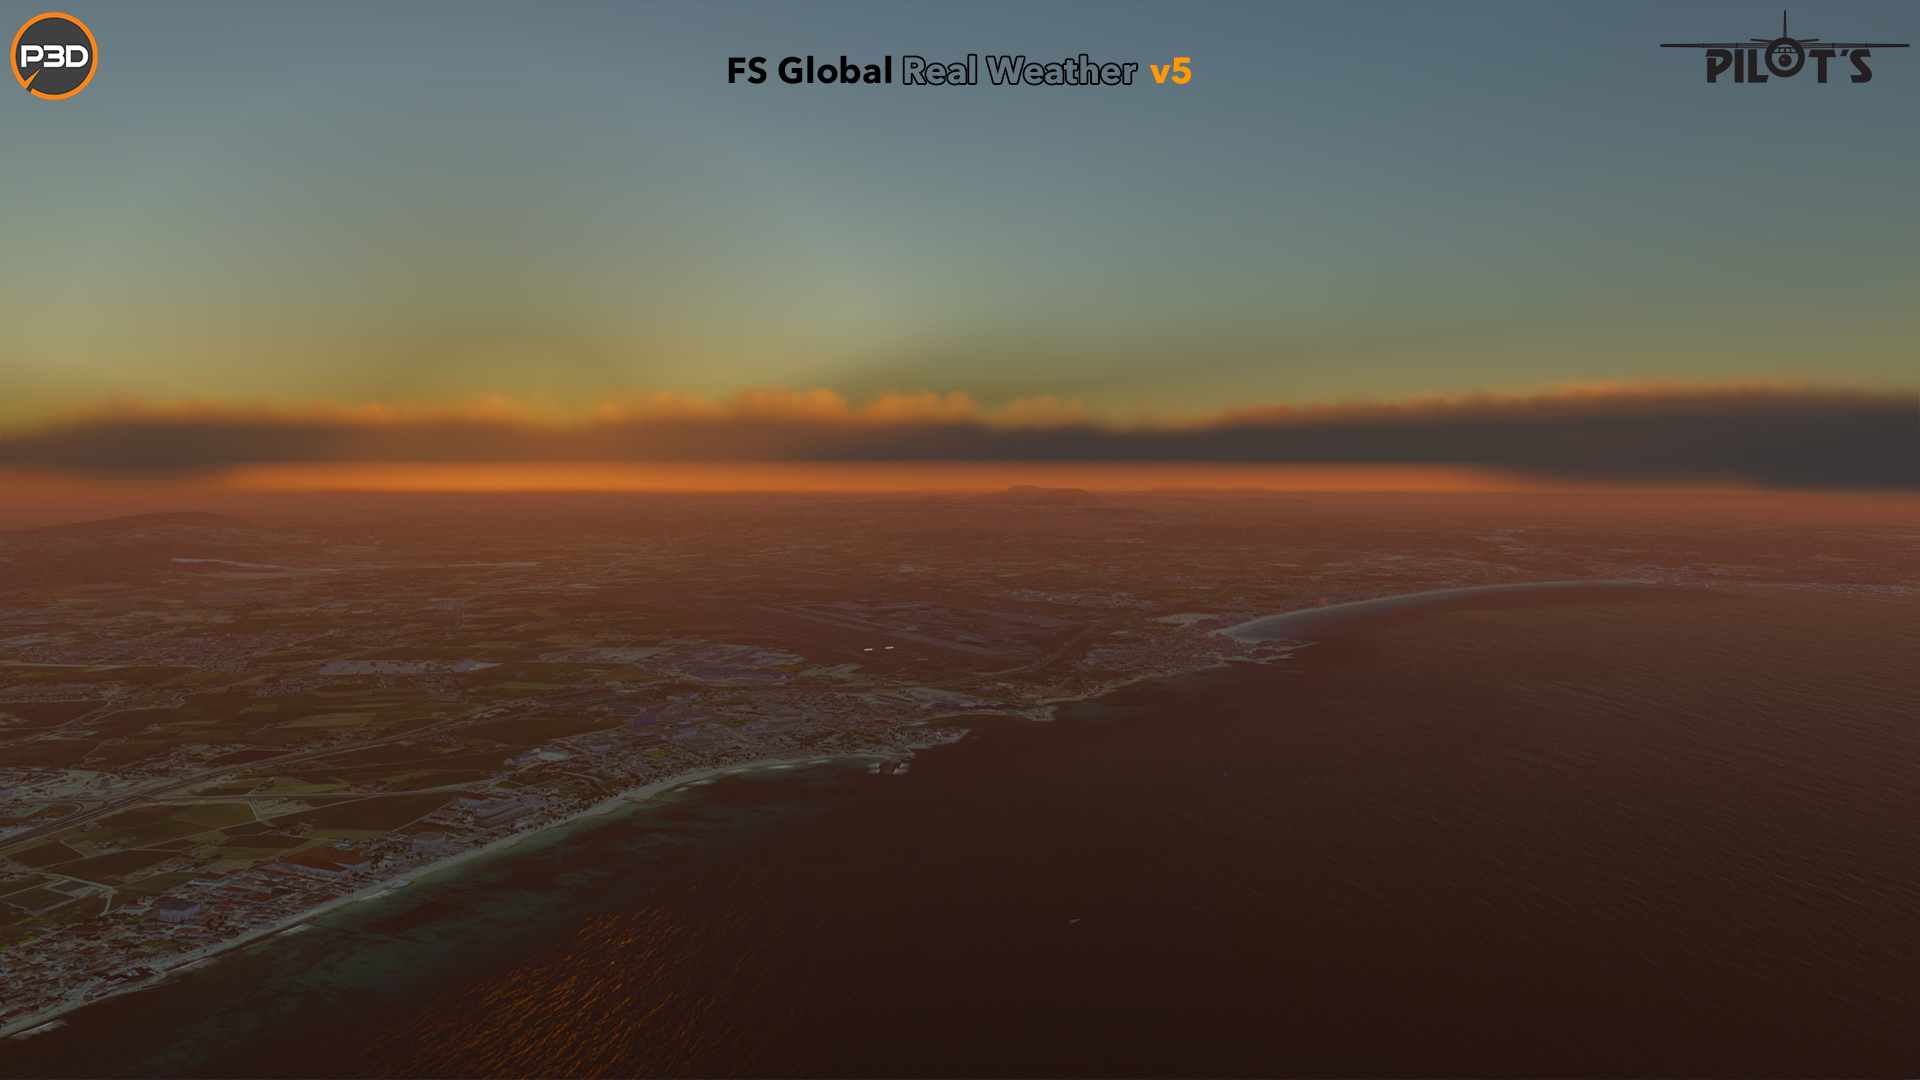 PILOT'S FSG - FS GLOBAL REAL WEATHER PREPAR3D V5 EDITION